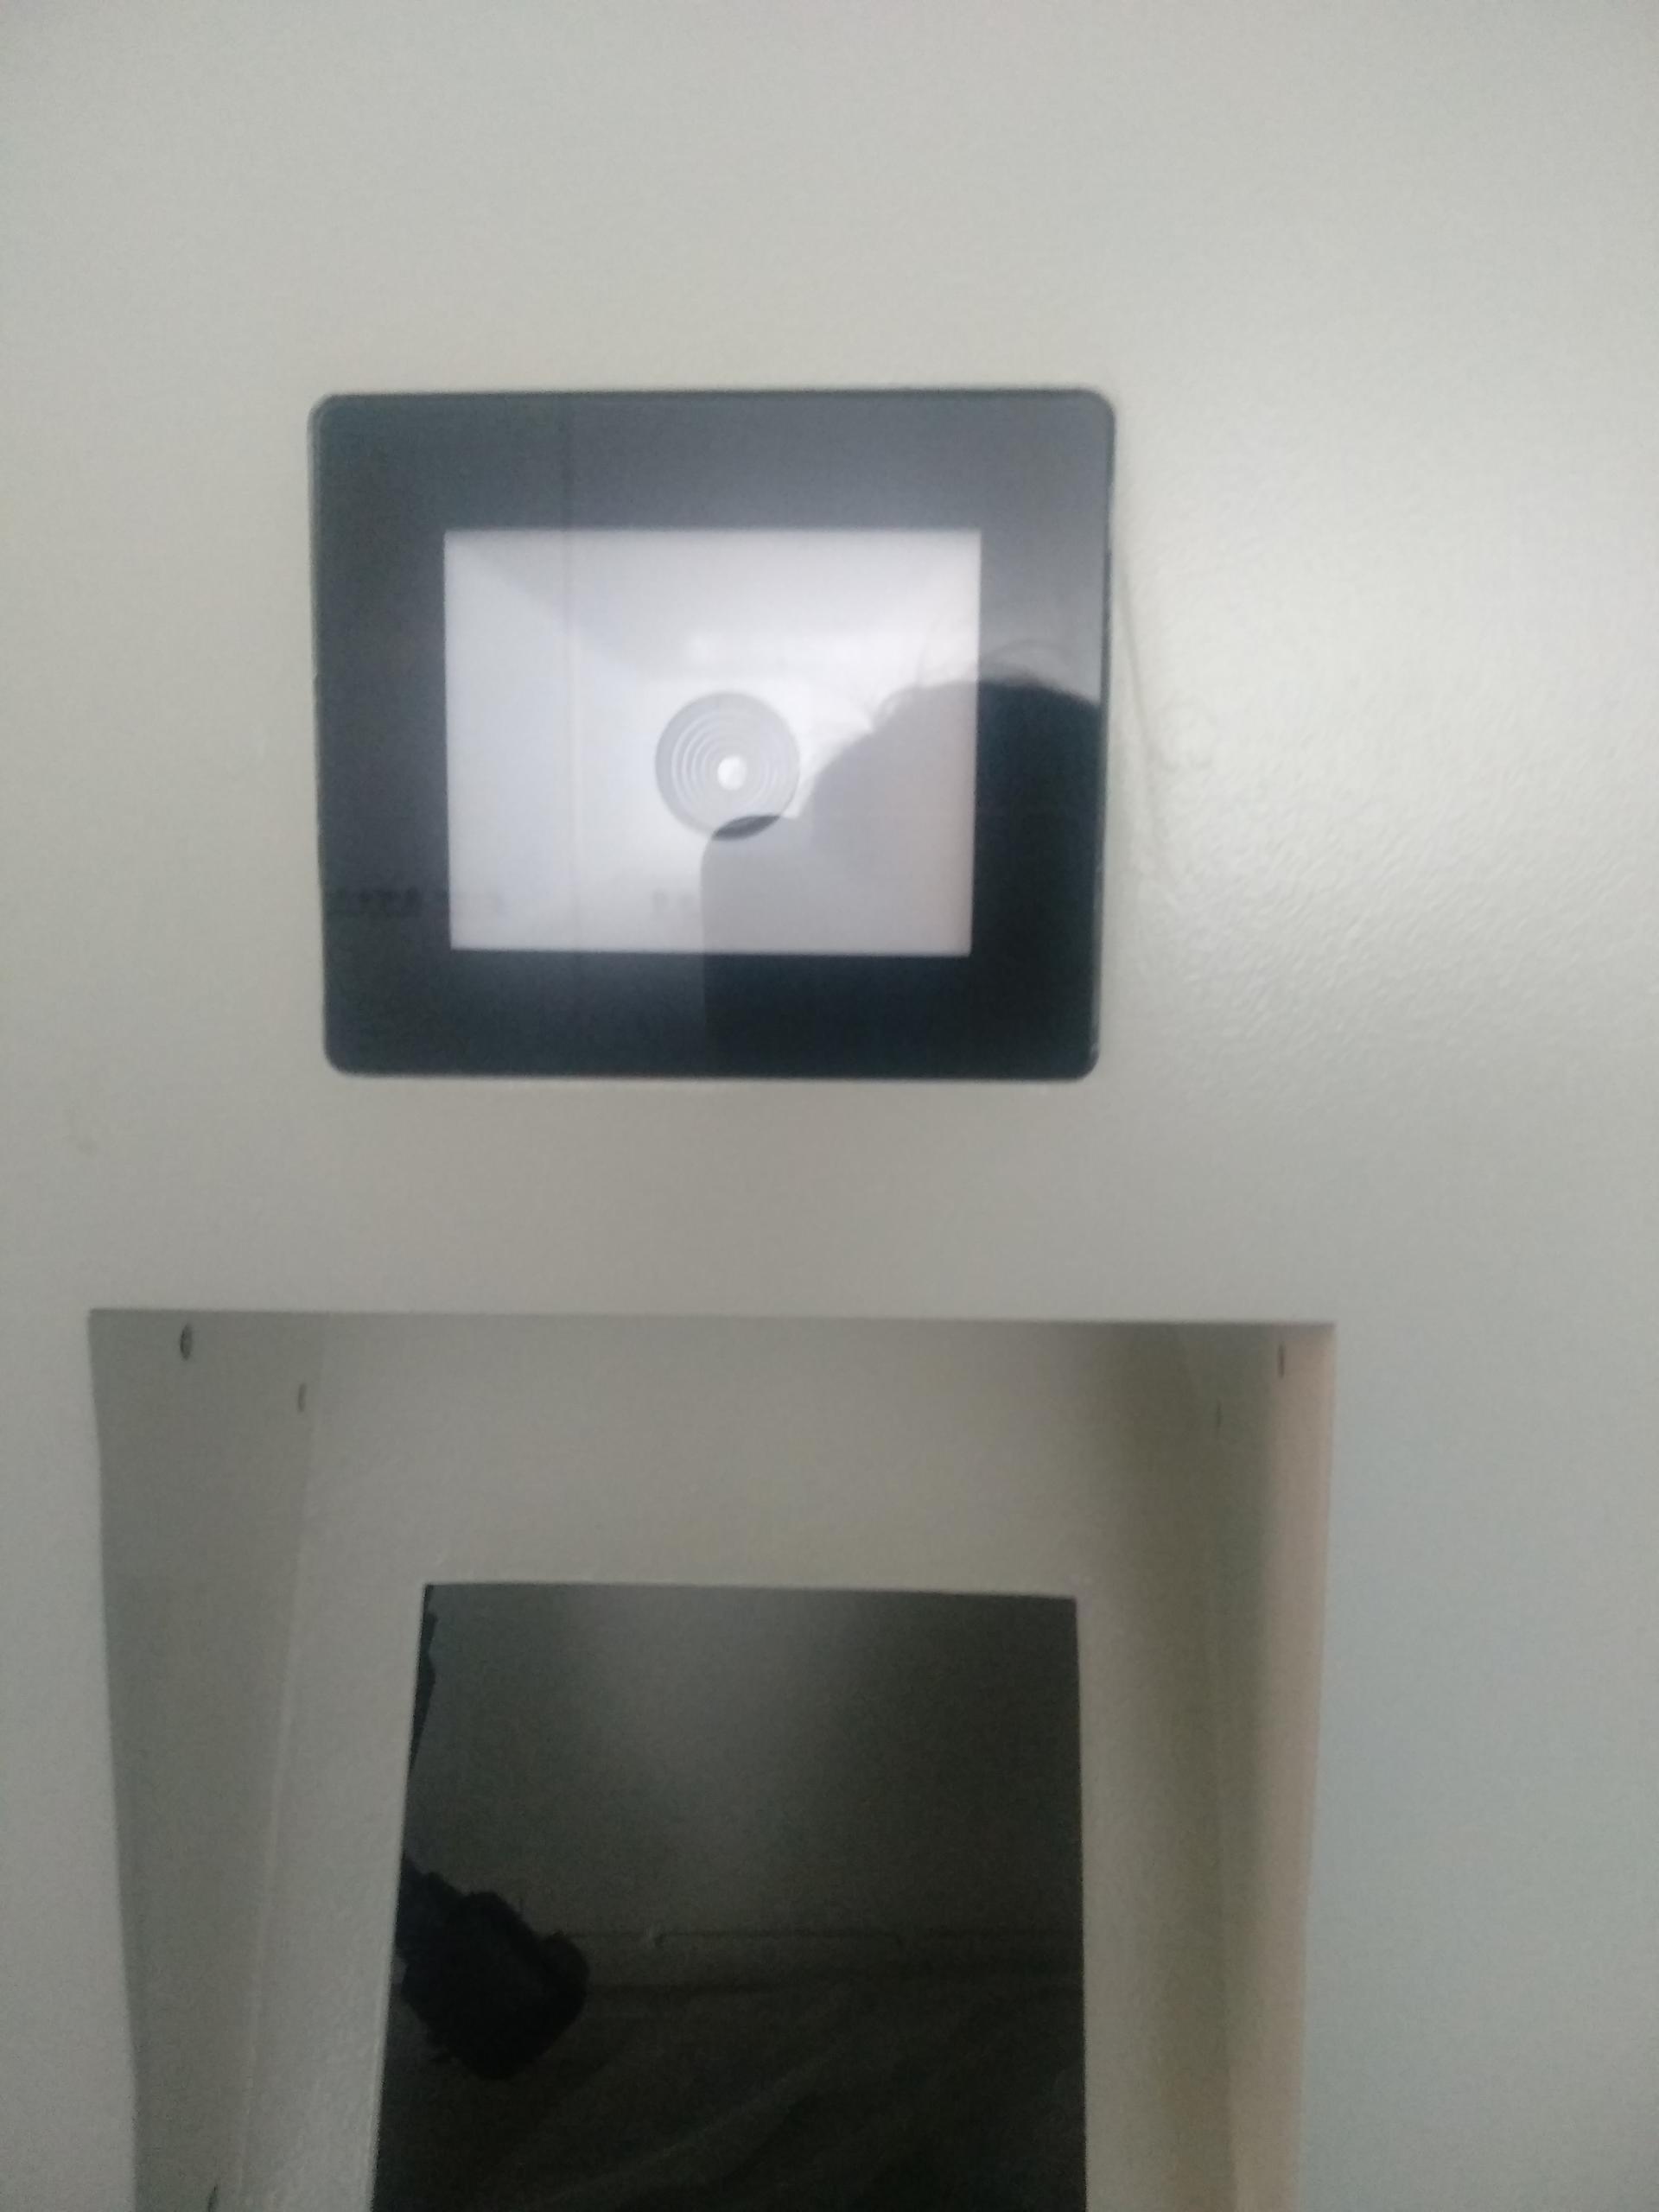 all-in-one tailormade digital signage restaurant kiosk with QR code scanner and printing